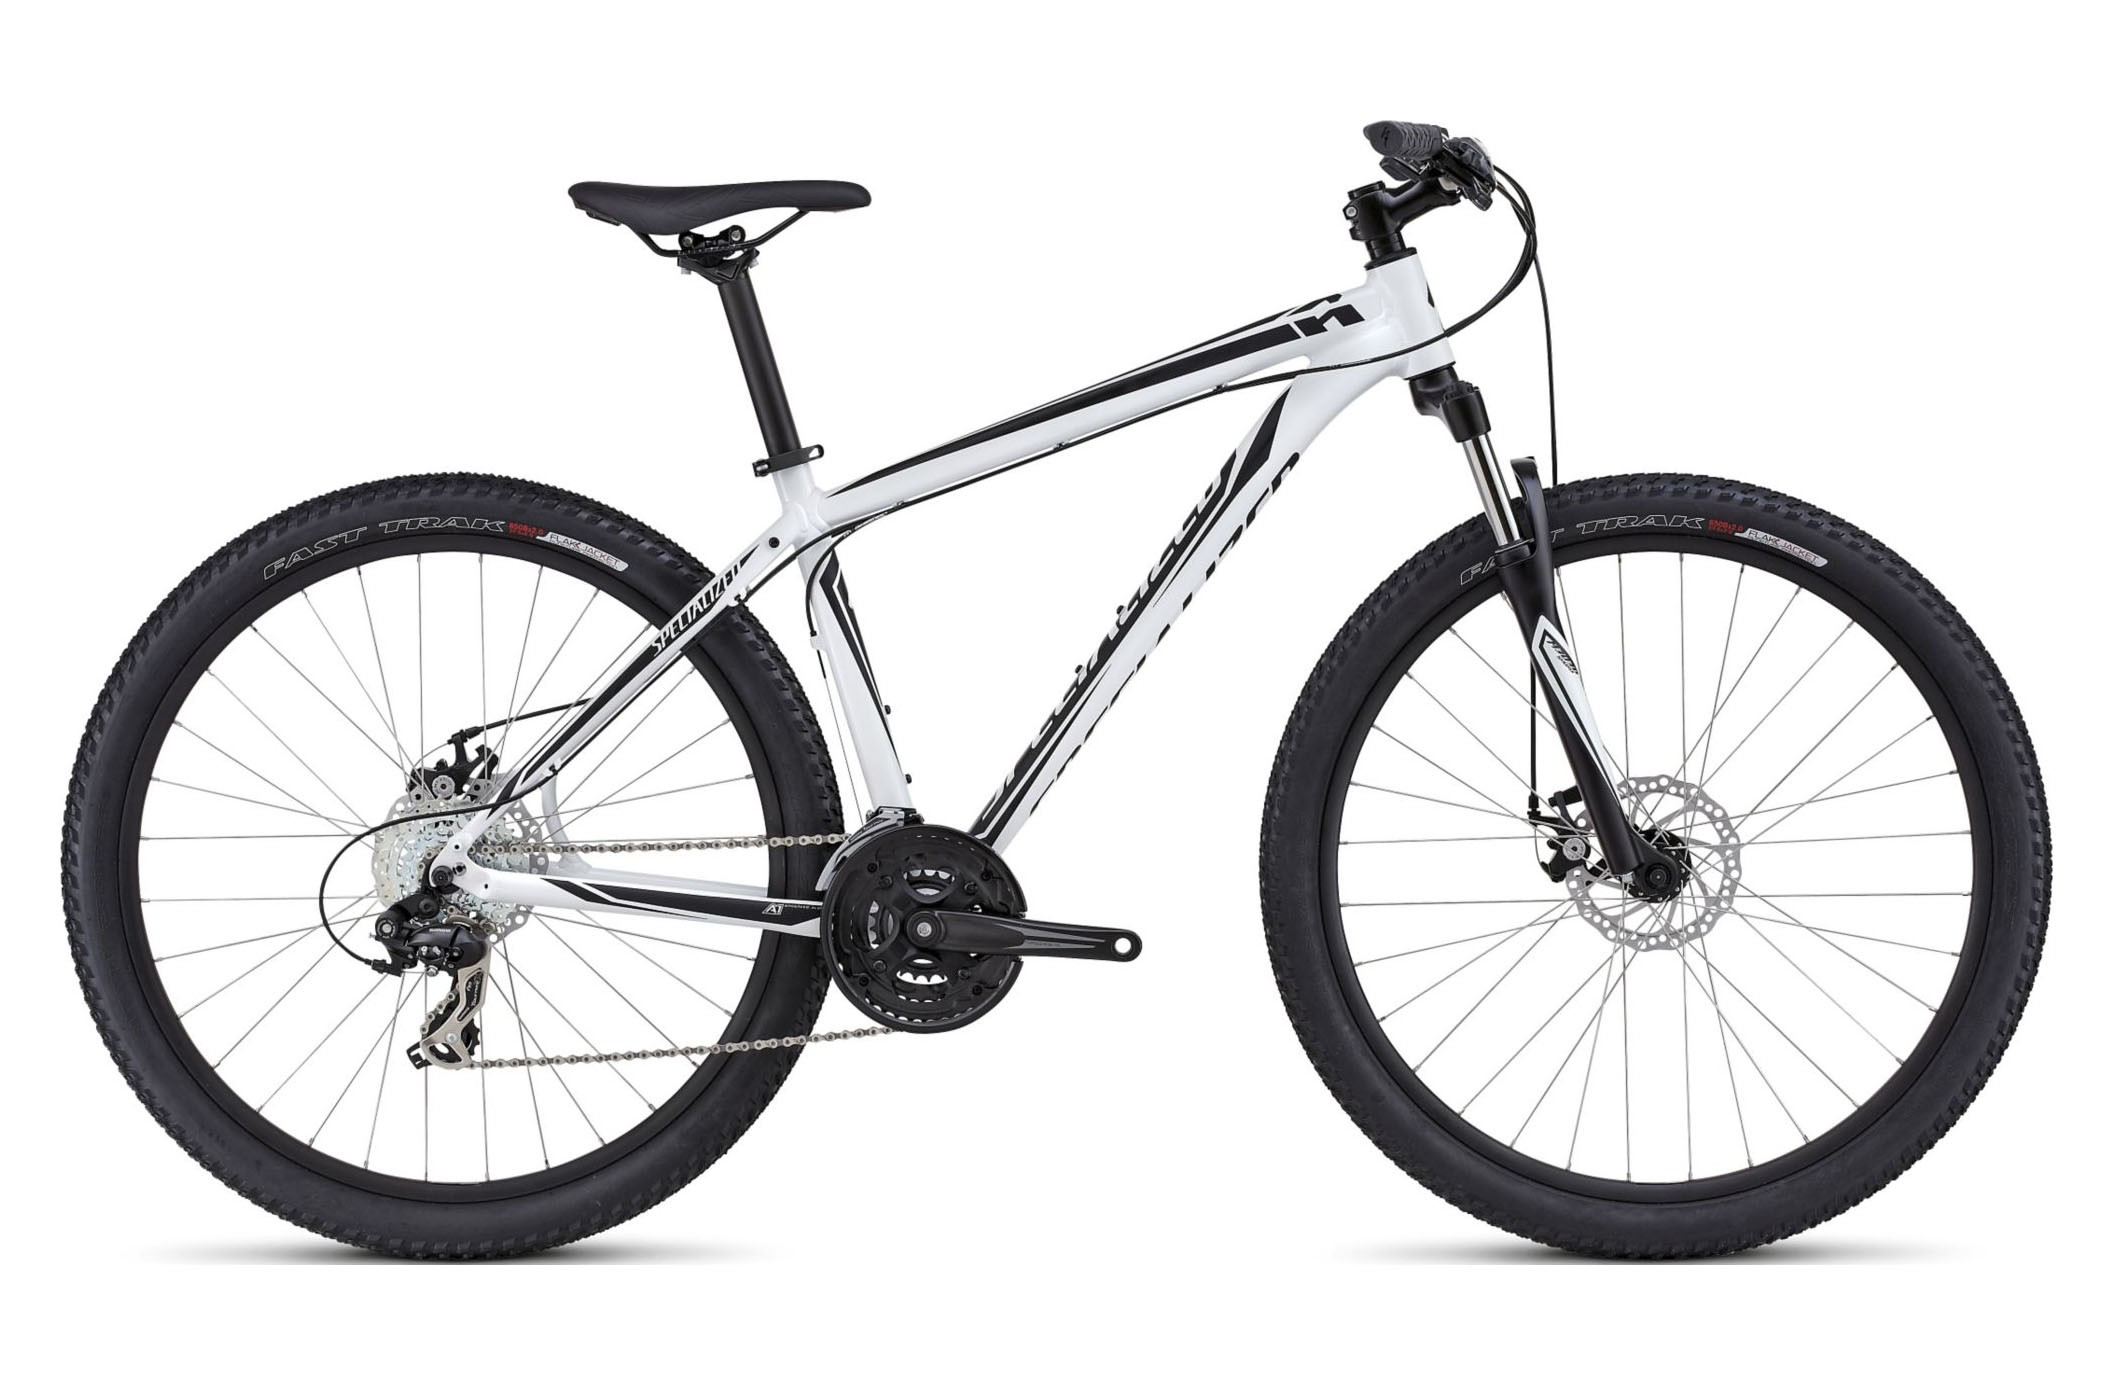 Горный велосипед Specialized Hardrock Disc 650b (2016)